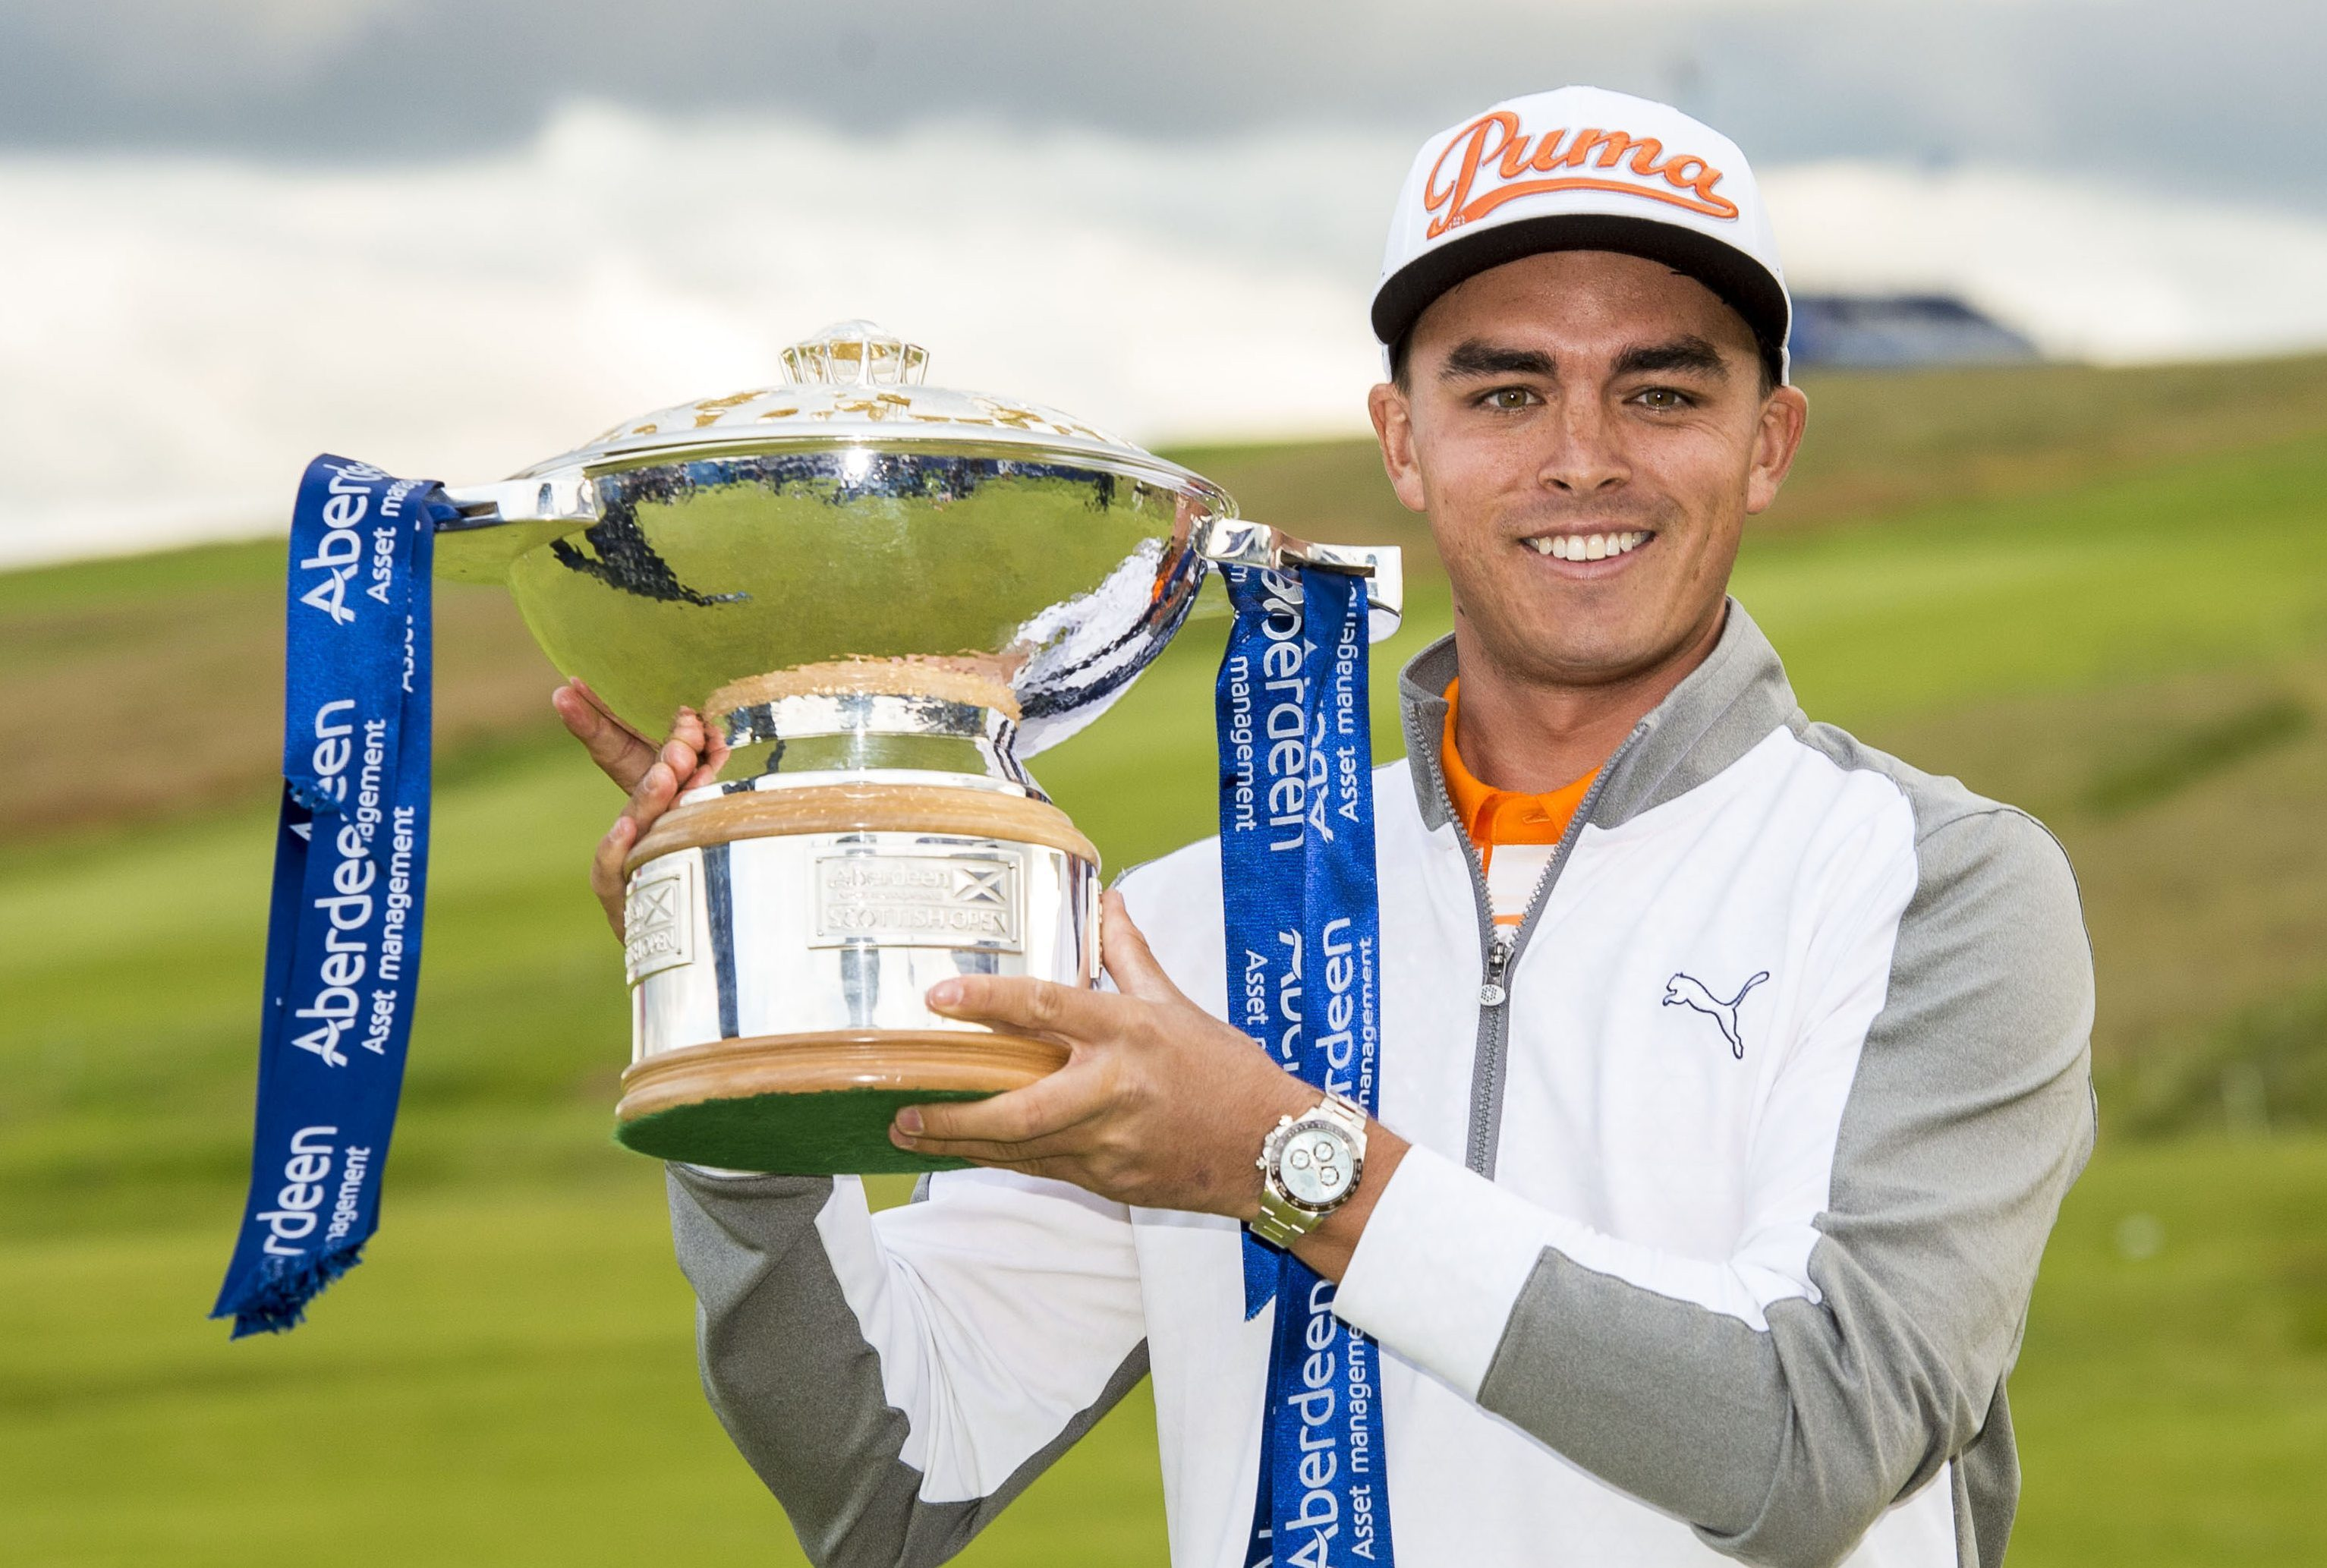 Rickie Fowler celebrates as he wins the Aberdeen Asset Management Scottish Open last year.